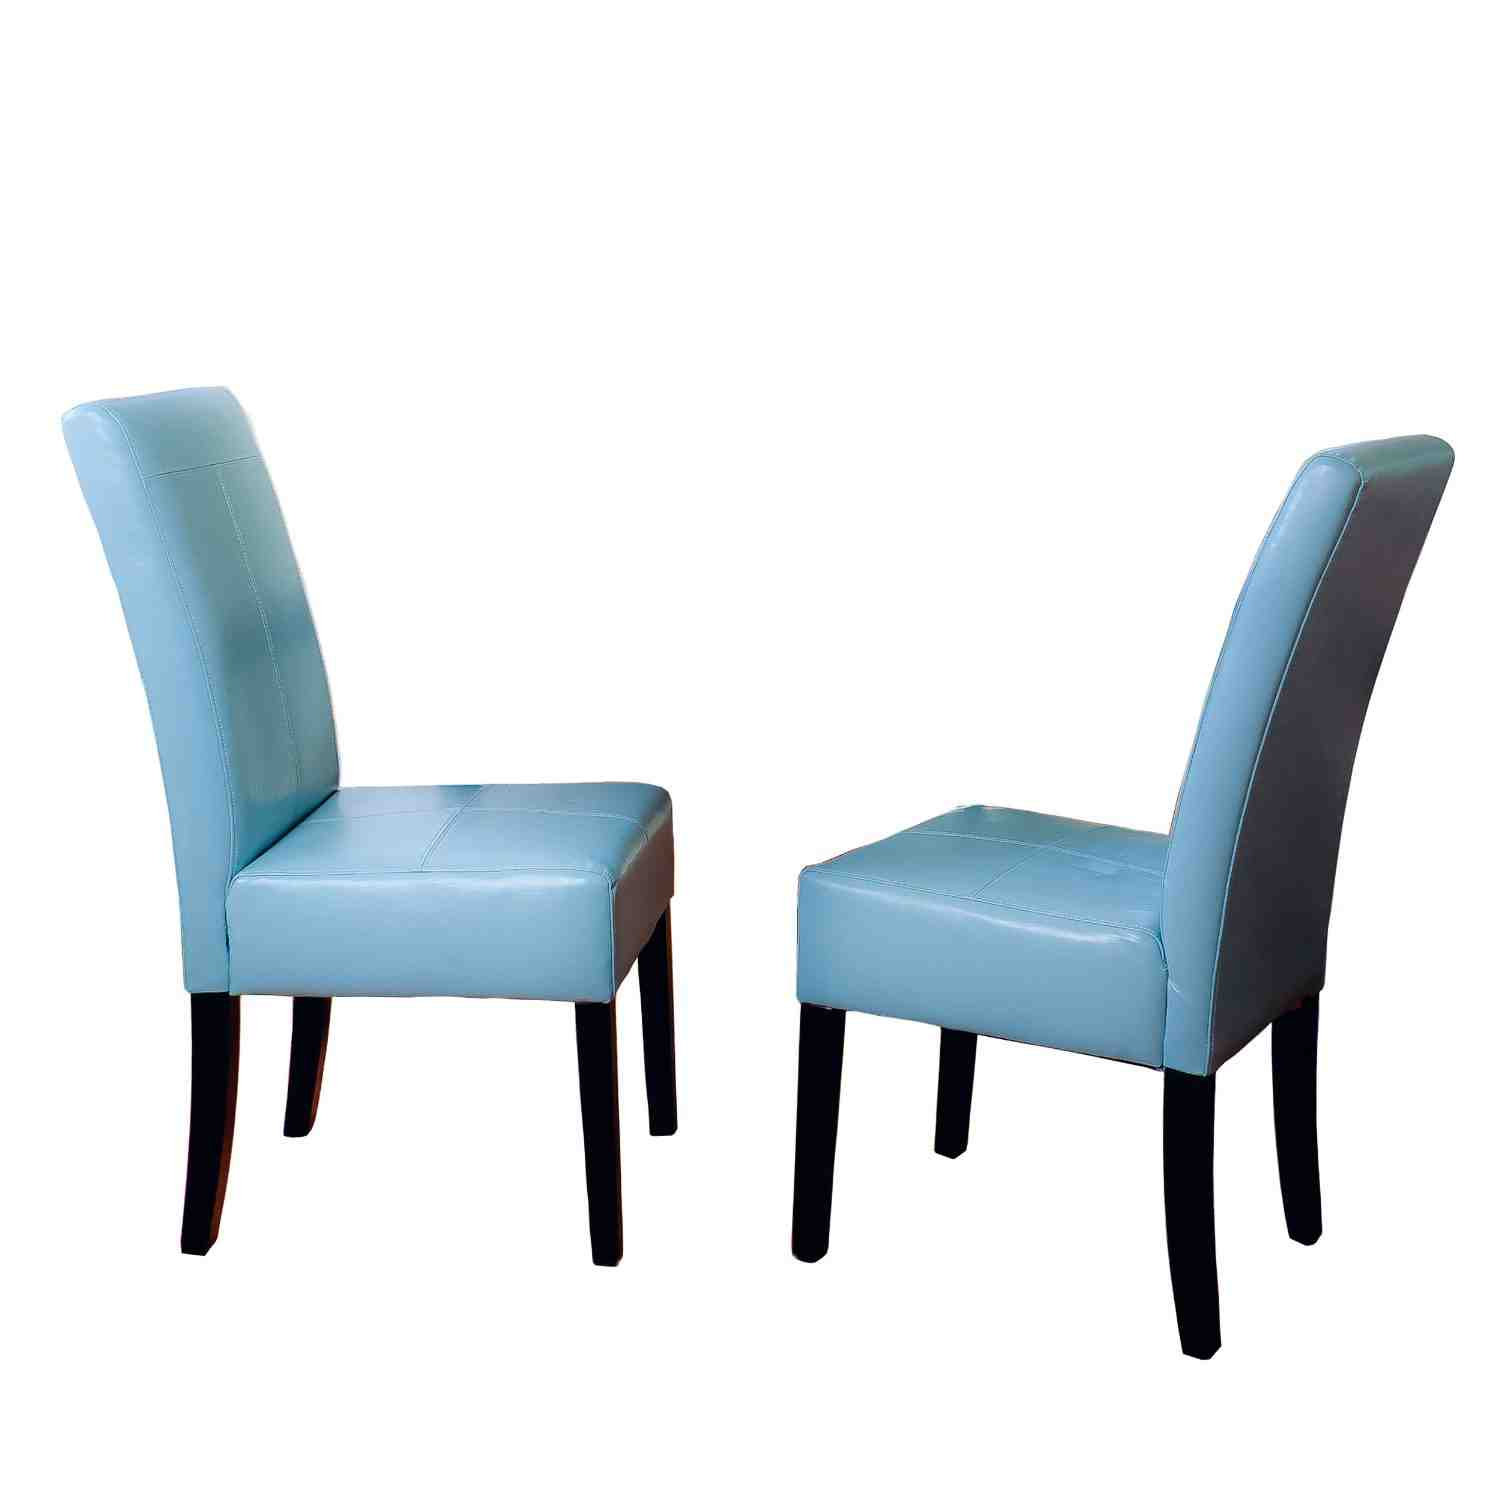 dining room chairs leather walmart booster chair faux decor ideasdecor ideas